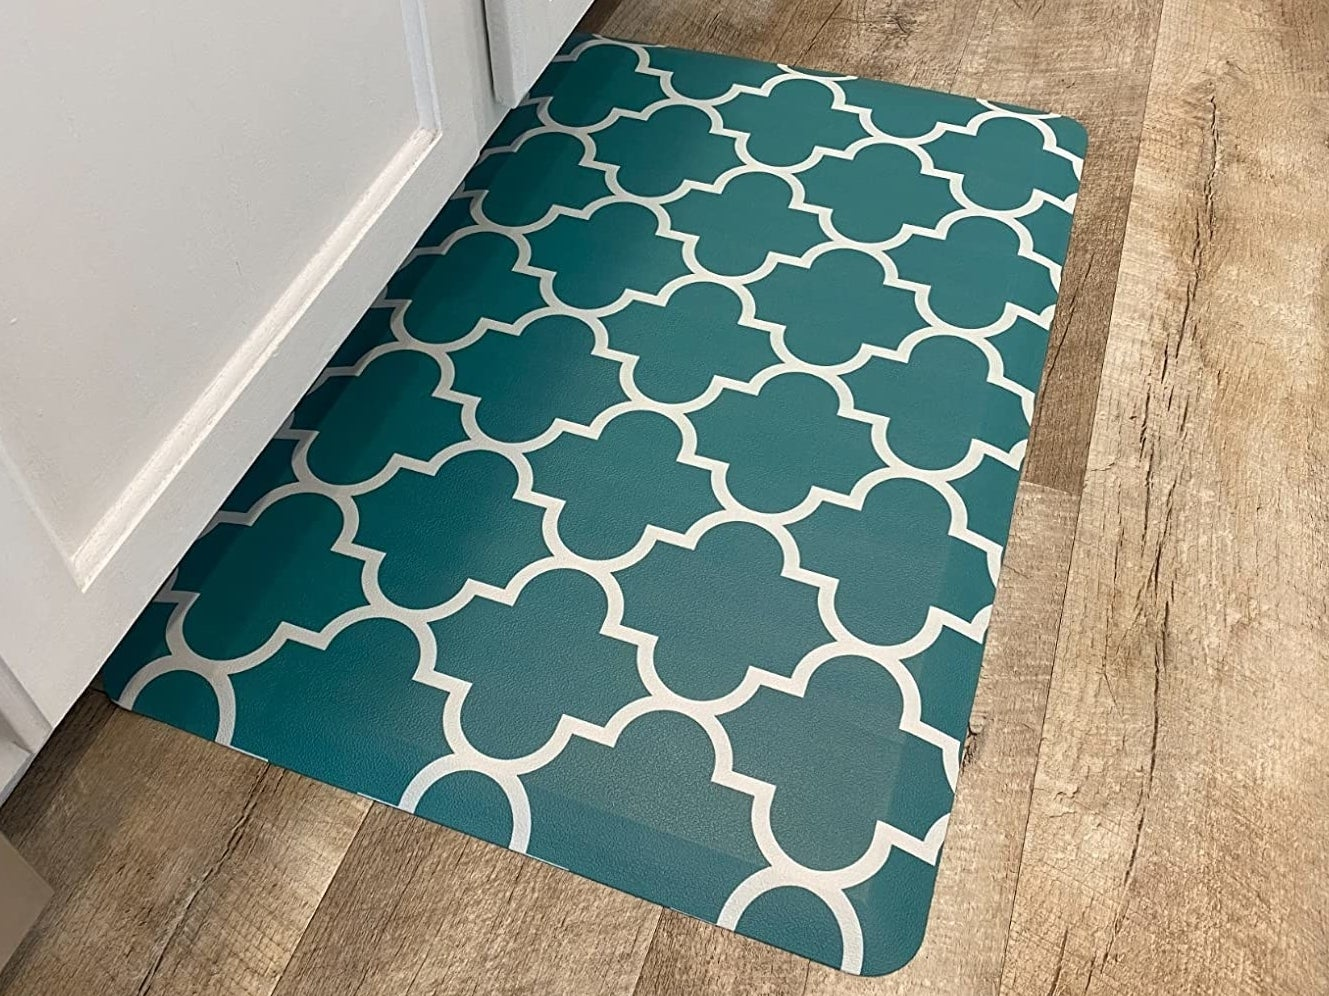 Reviewer photo of the kitchen mat on a hardwood floor